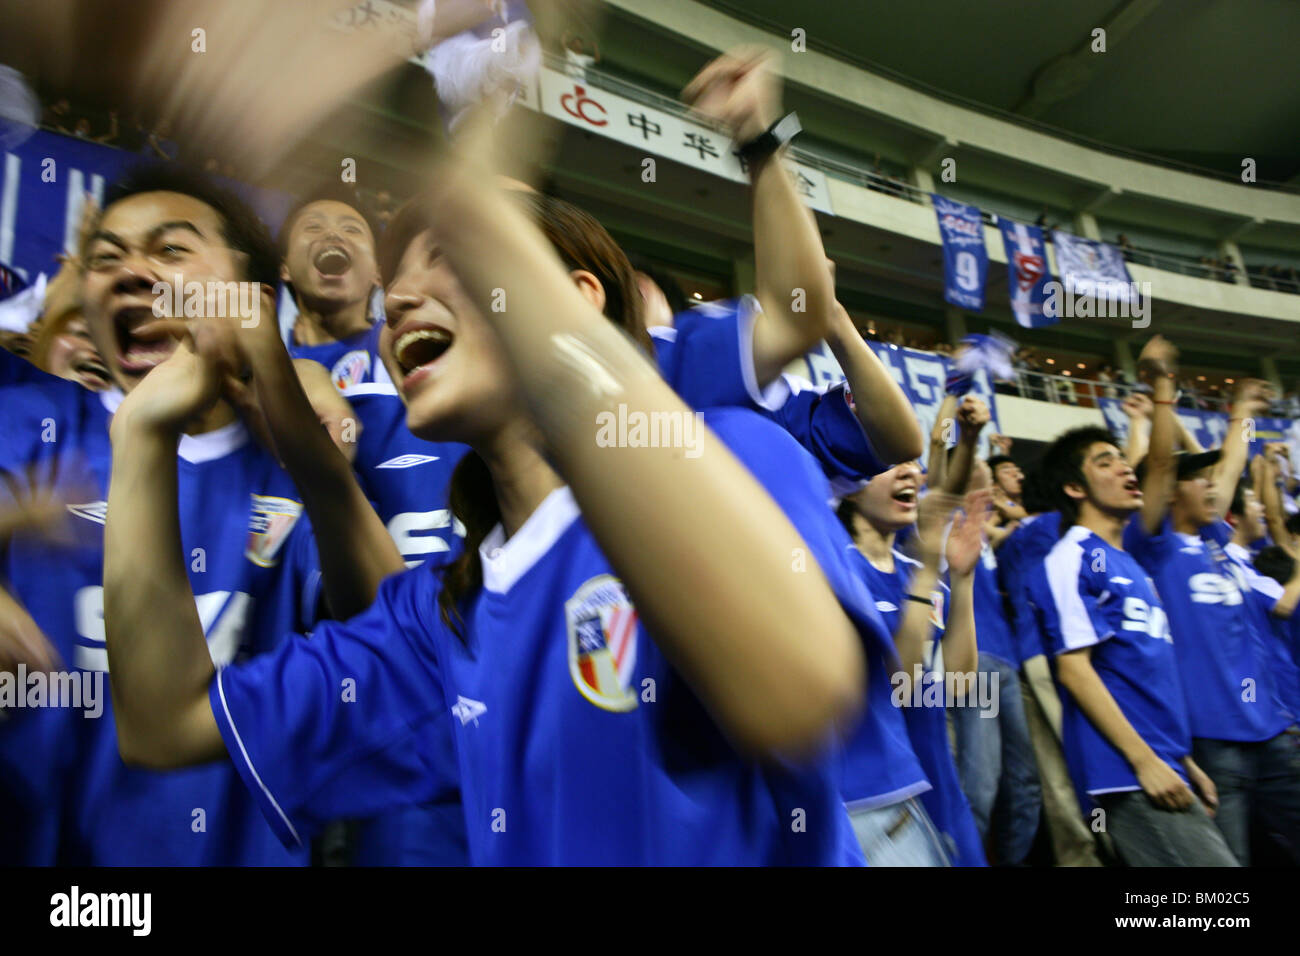 Soccer, soccer game, fans, Club - Stock Image